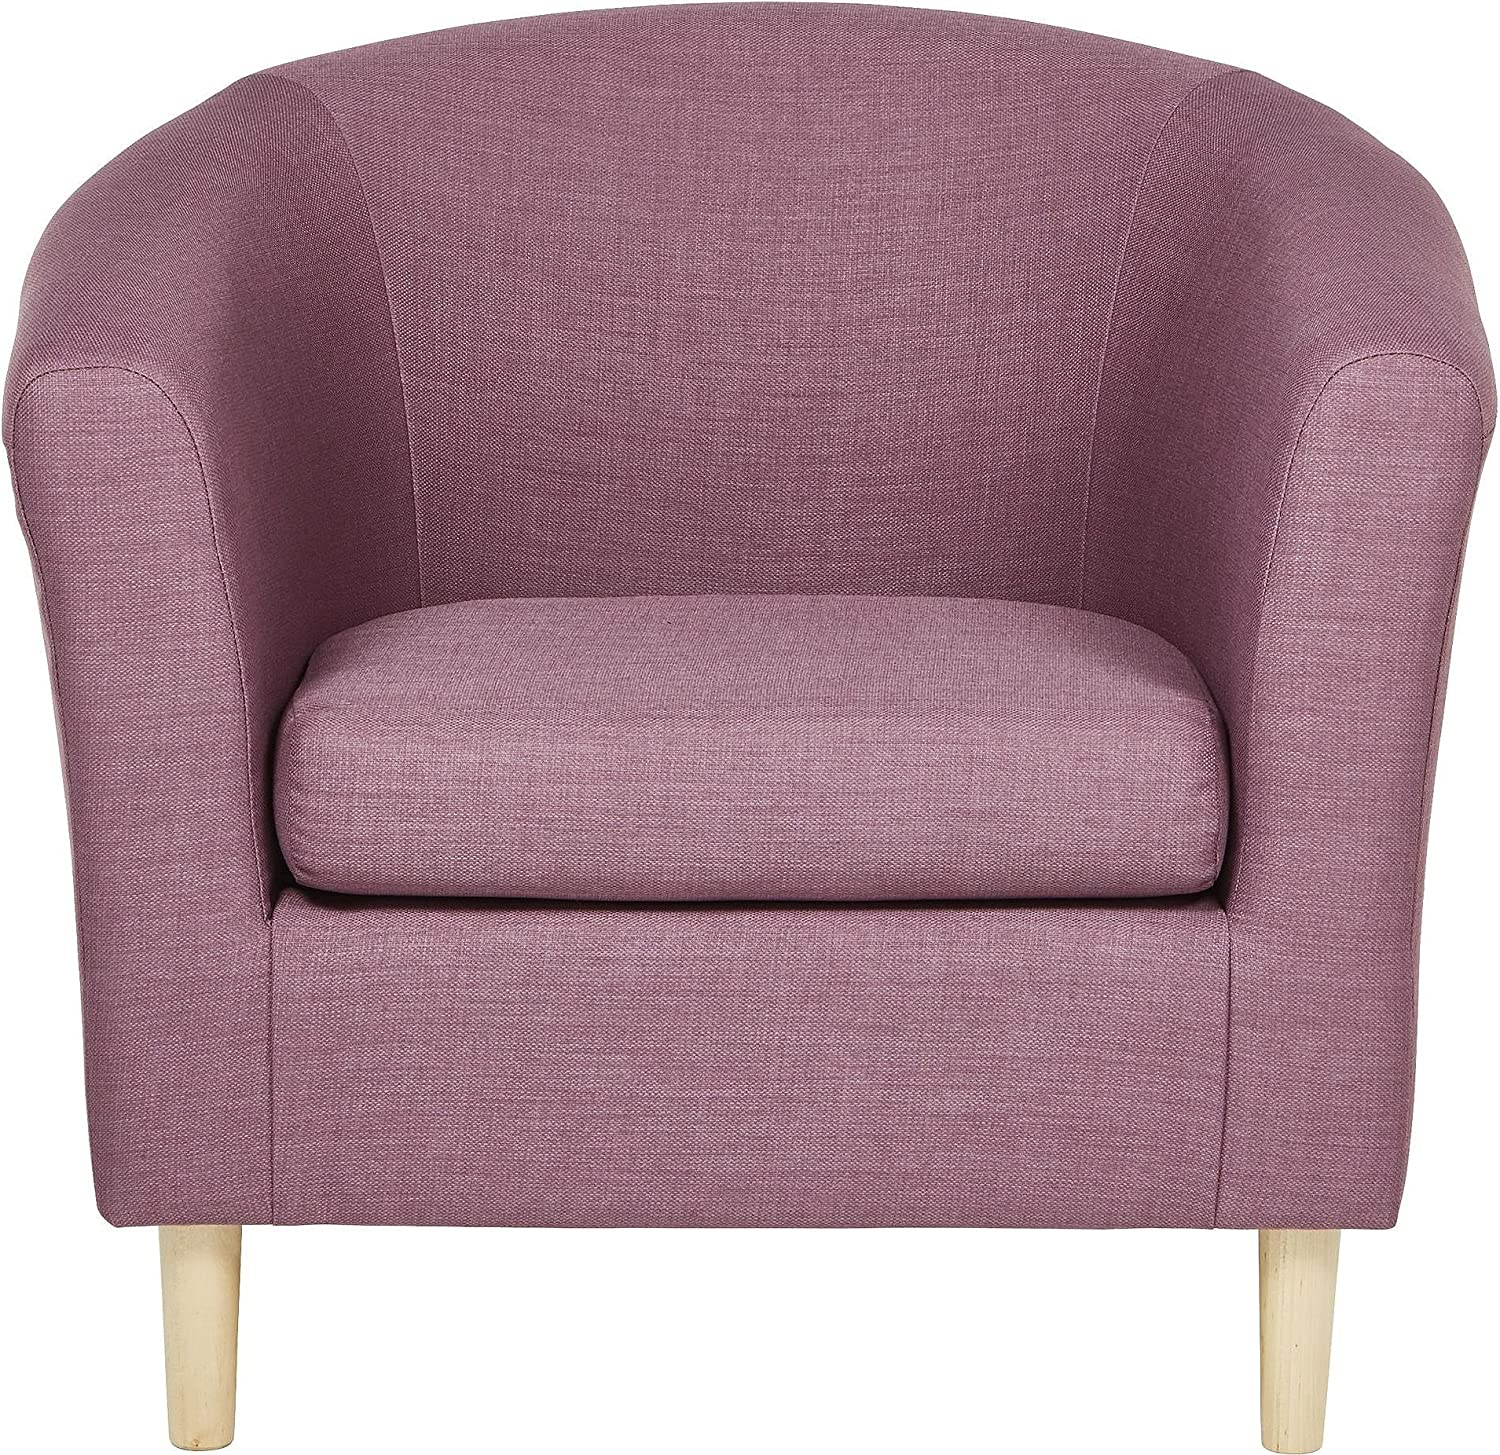 Tesco NEW Classic Woven Fabric Curved Deep Seat Tub Arm Chair - Lilac